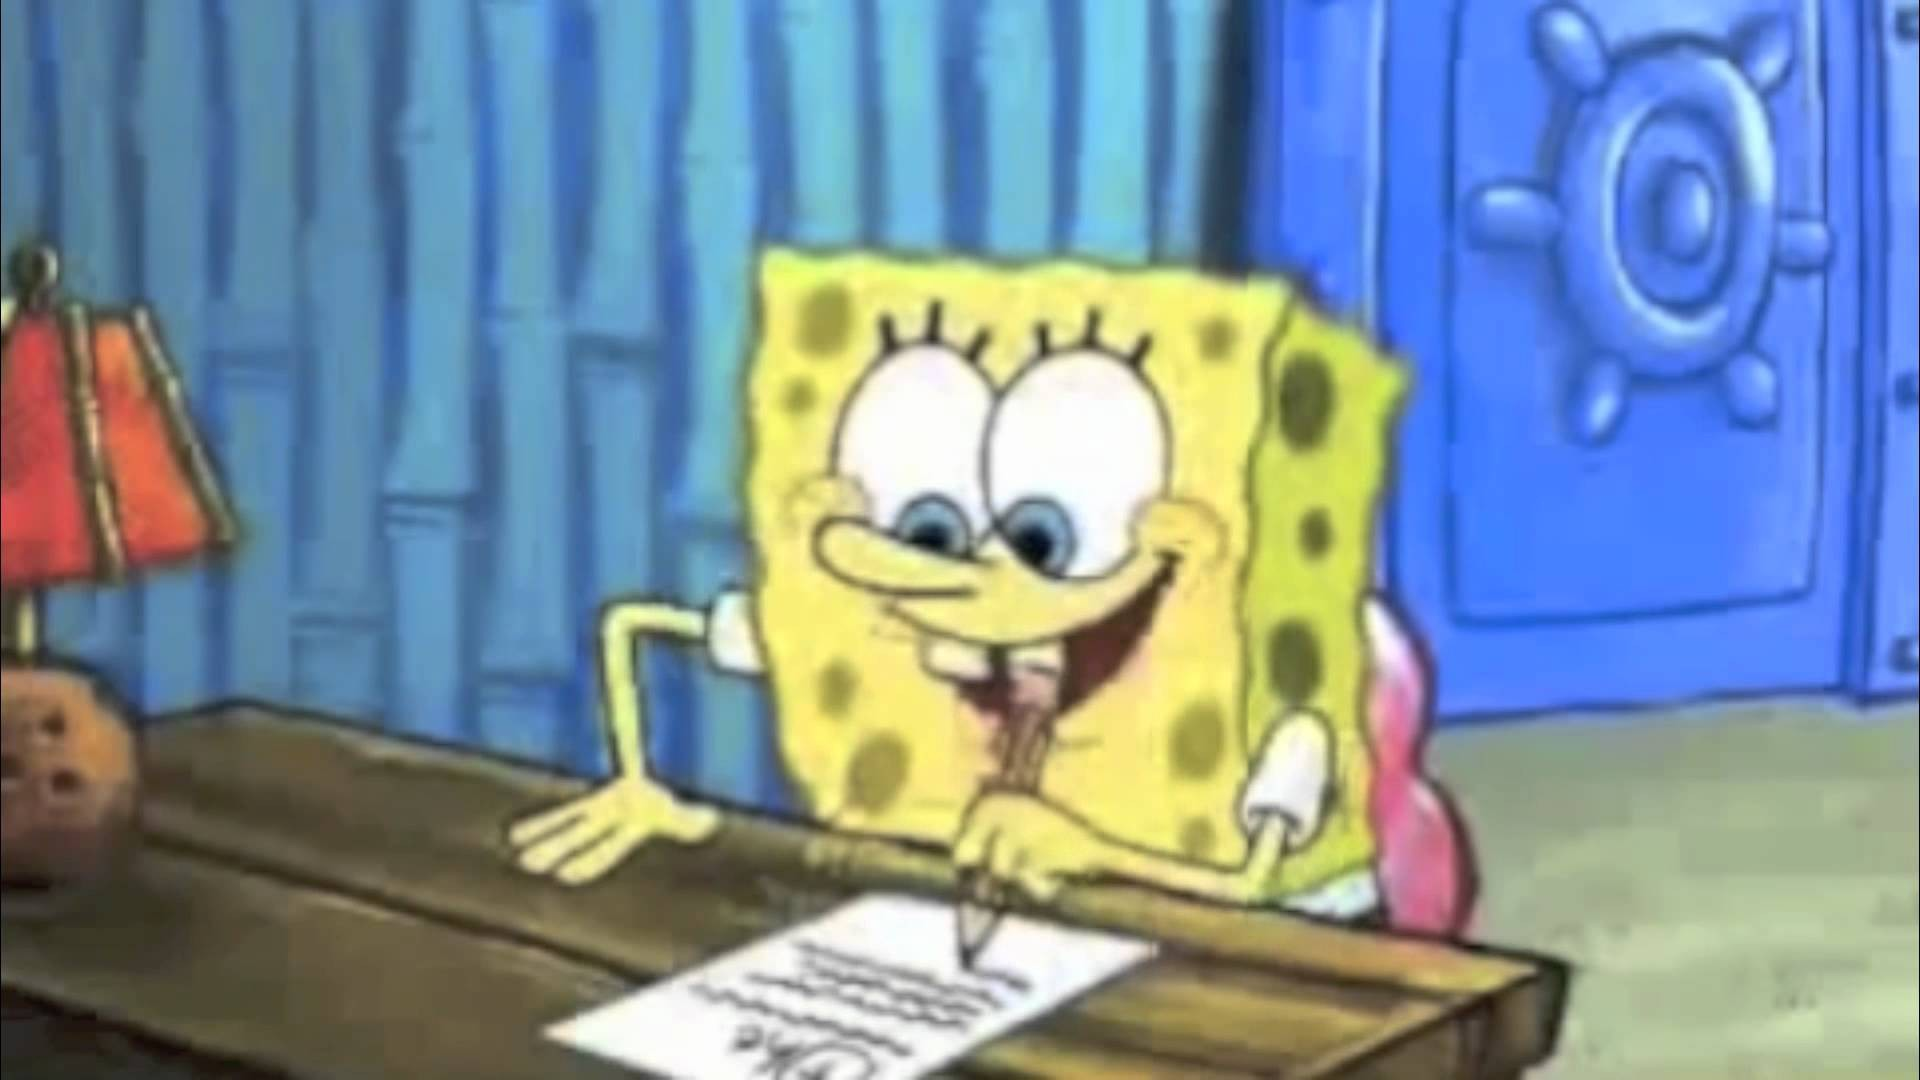 013 Essay Example Spongebob Writing His Help For Hours Maxresde Gif The Rap Font Surprising Pencil Quote Full Episode Scene 1920